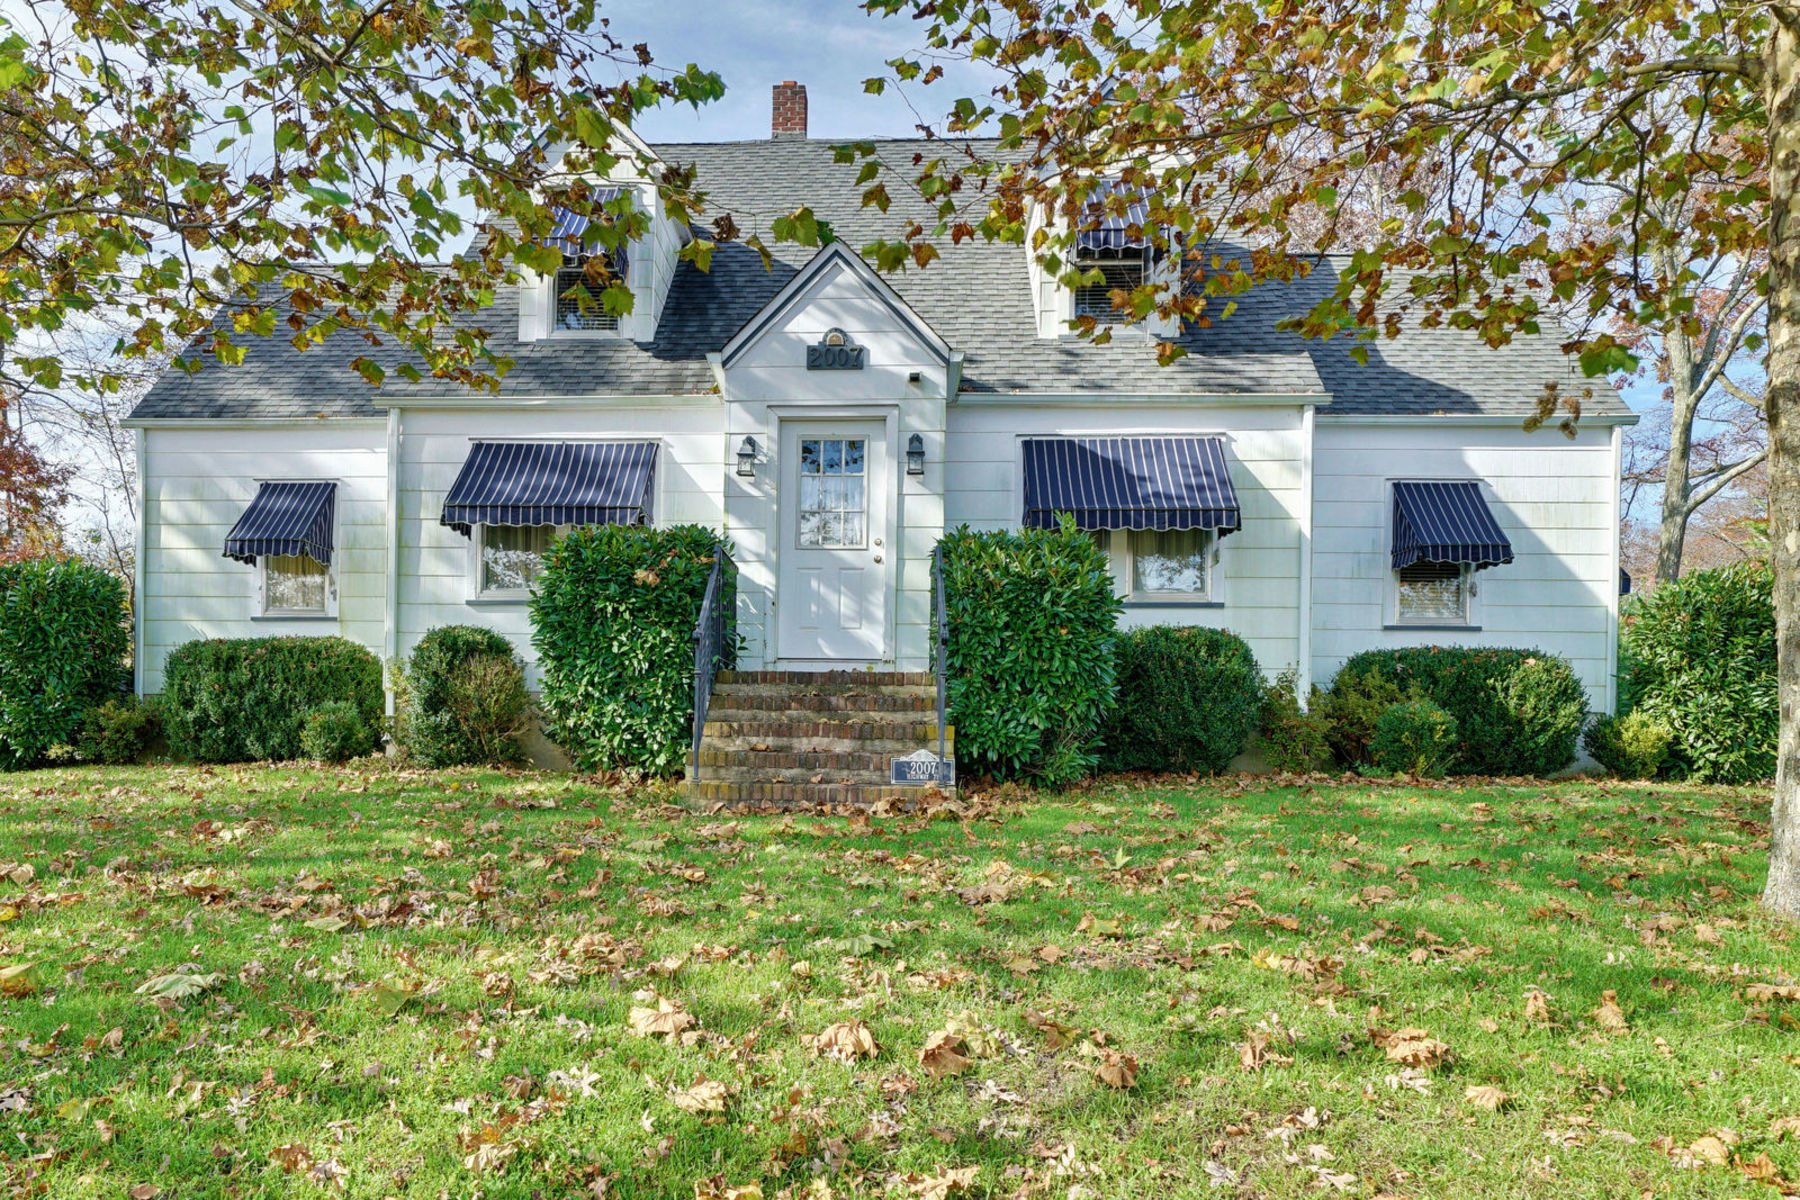 Single Family Home for Sale at West Belmar Cape on Corner Lot 2007 Highway 71, Wall, New Jersey 07719 United States